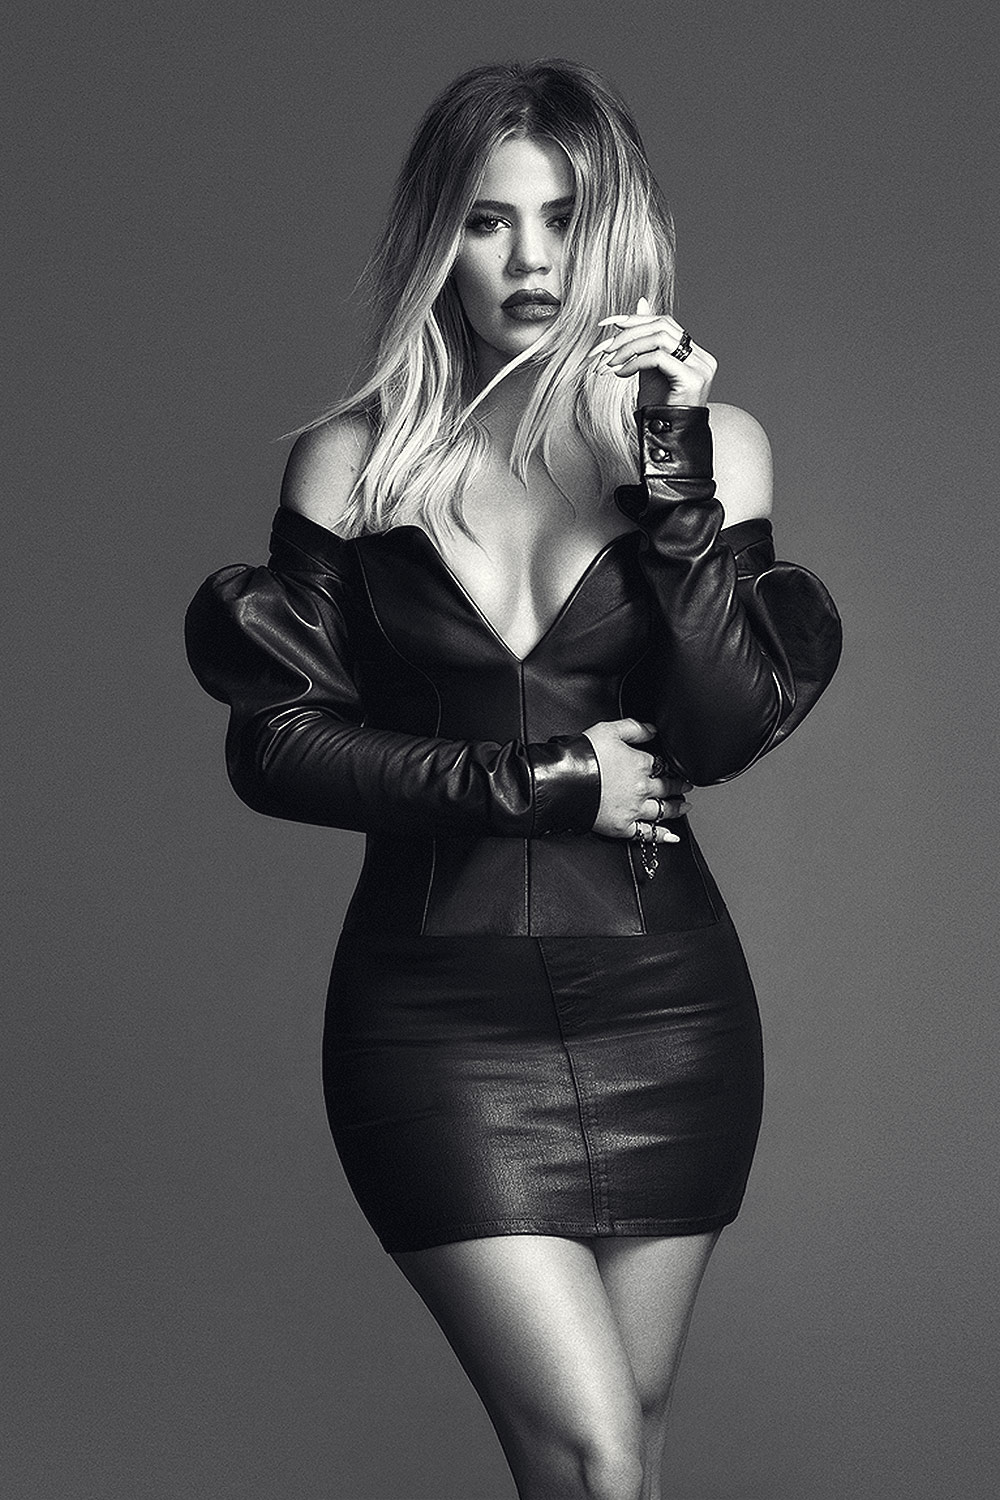 Khloe Kardashian photoshoot for GOOD AMERICAN